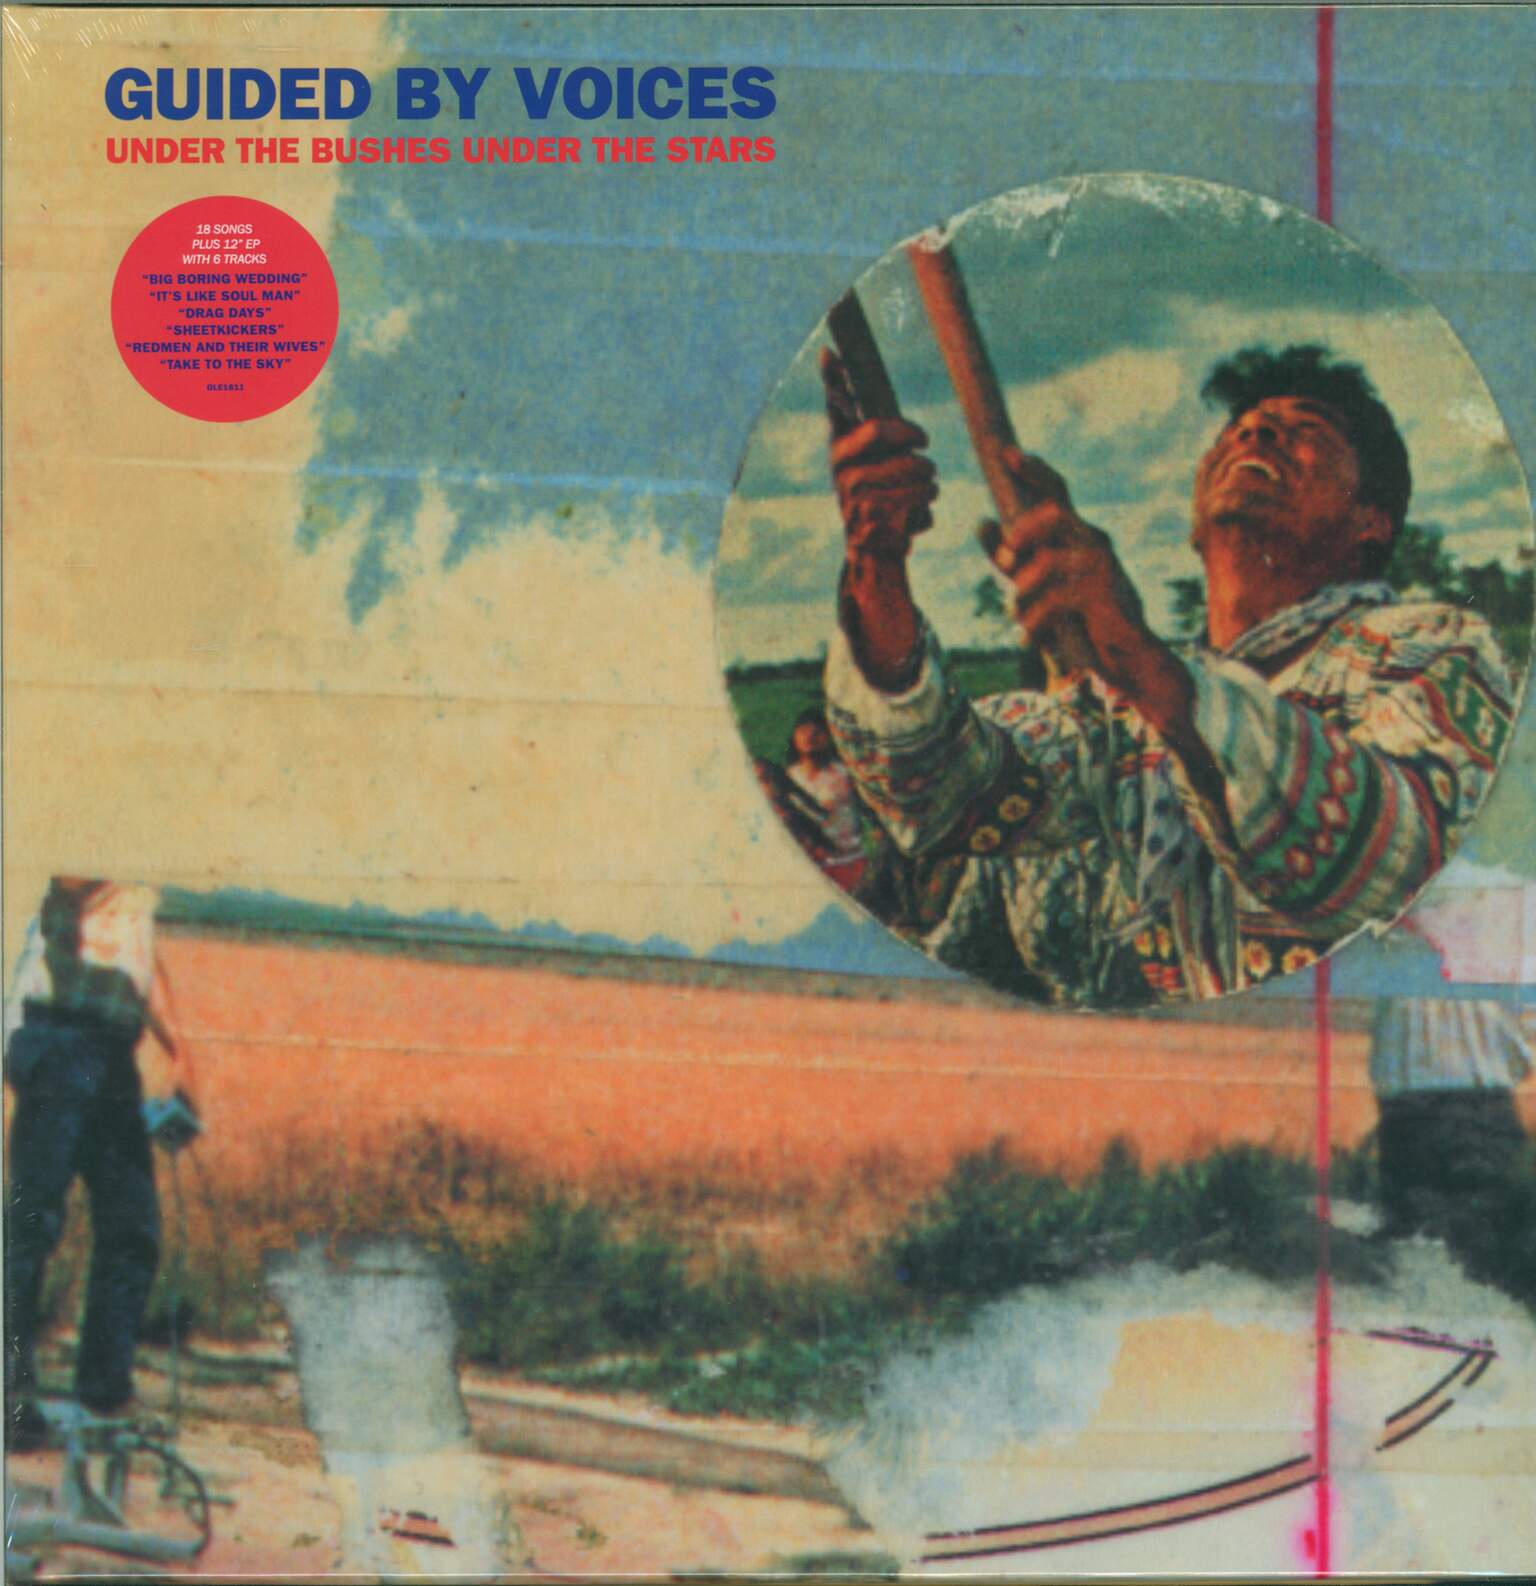 "Guided By Voices: Under The Bushes Under The Stars, 1×LP (Vinyl), 1×12"" Maxi Single (Vinyl)"